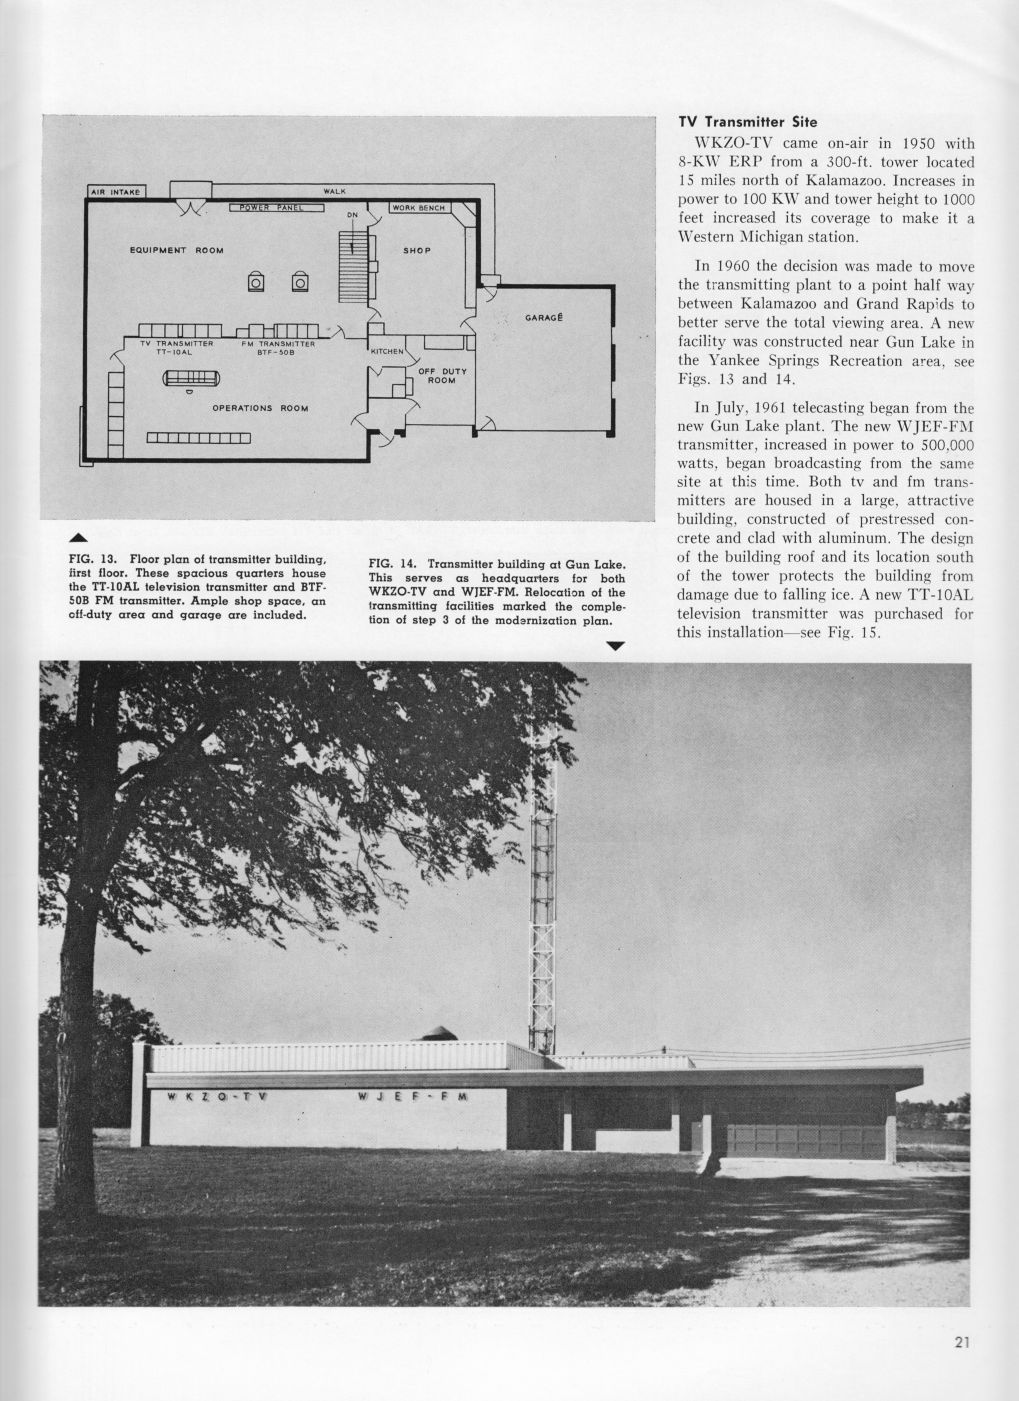 WJEF-FM Transmitter Site, page 1